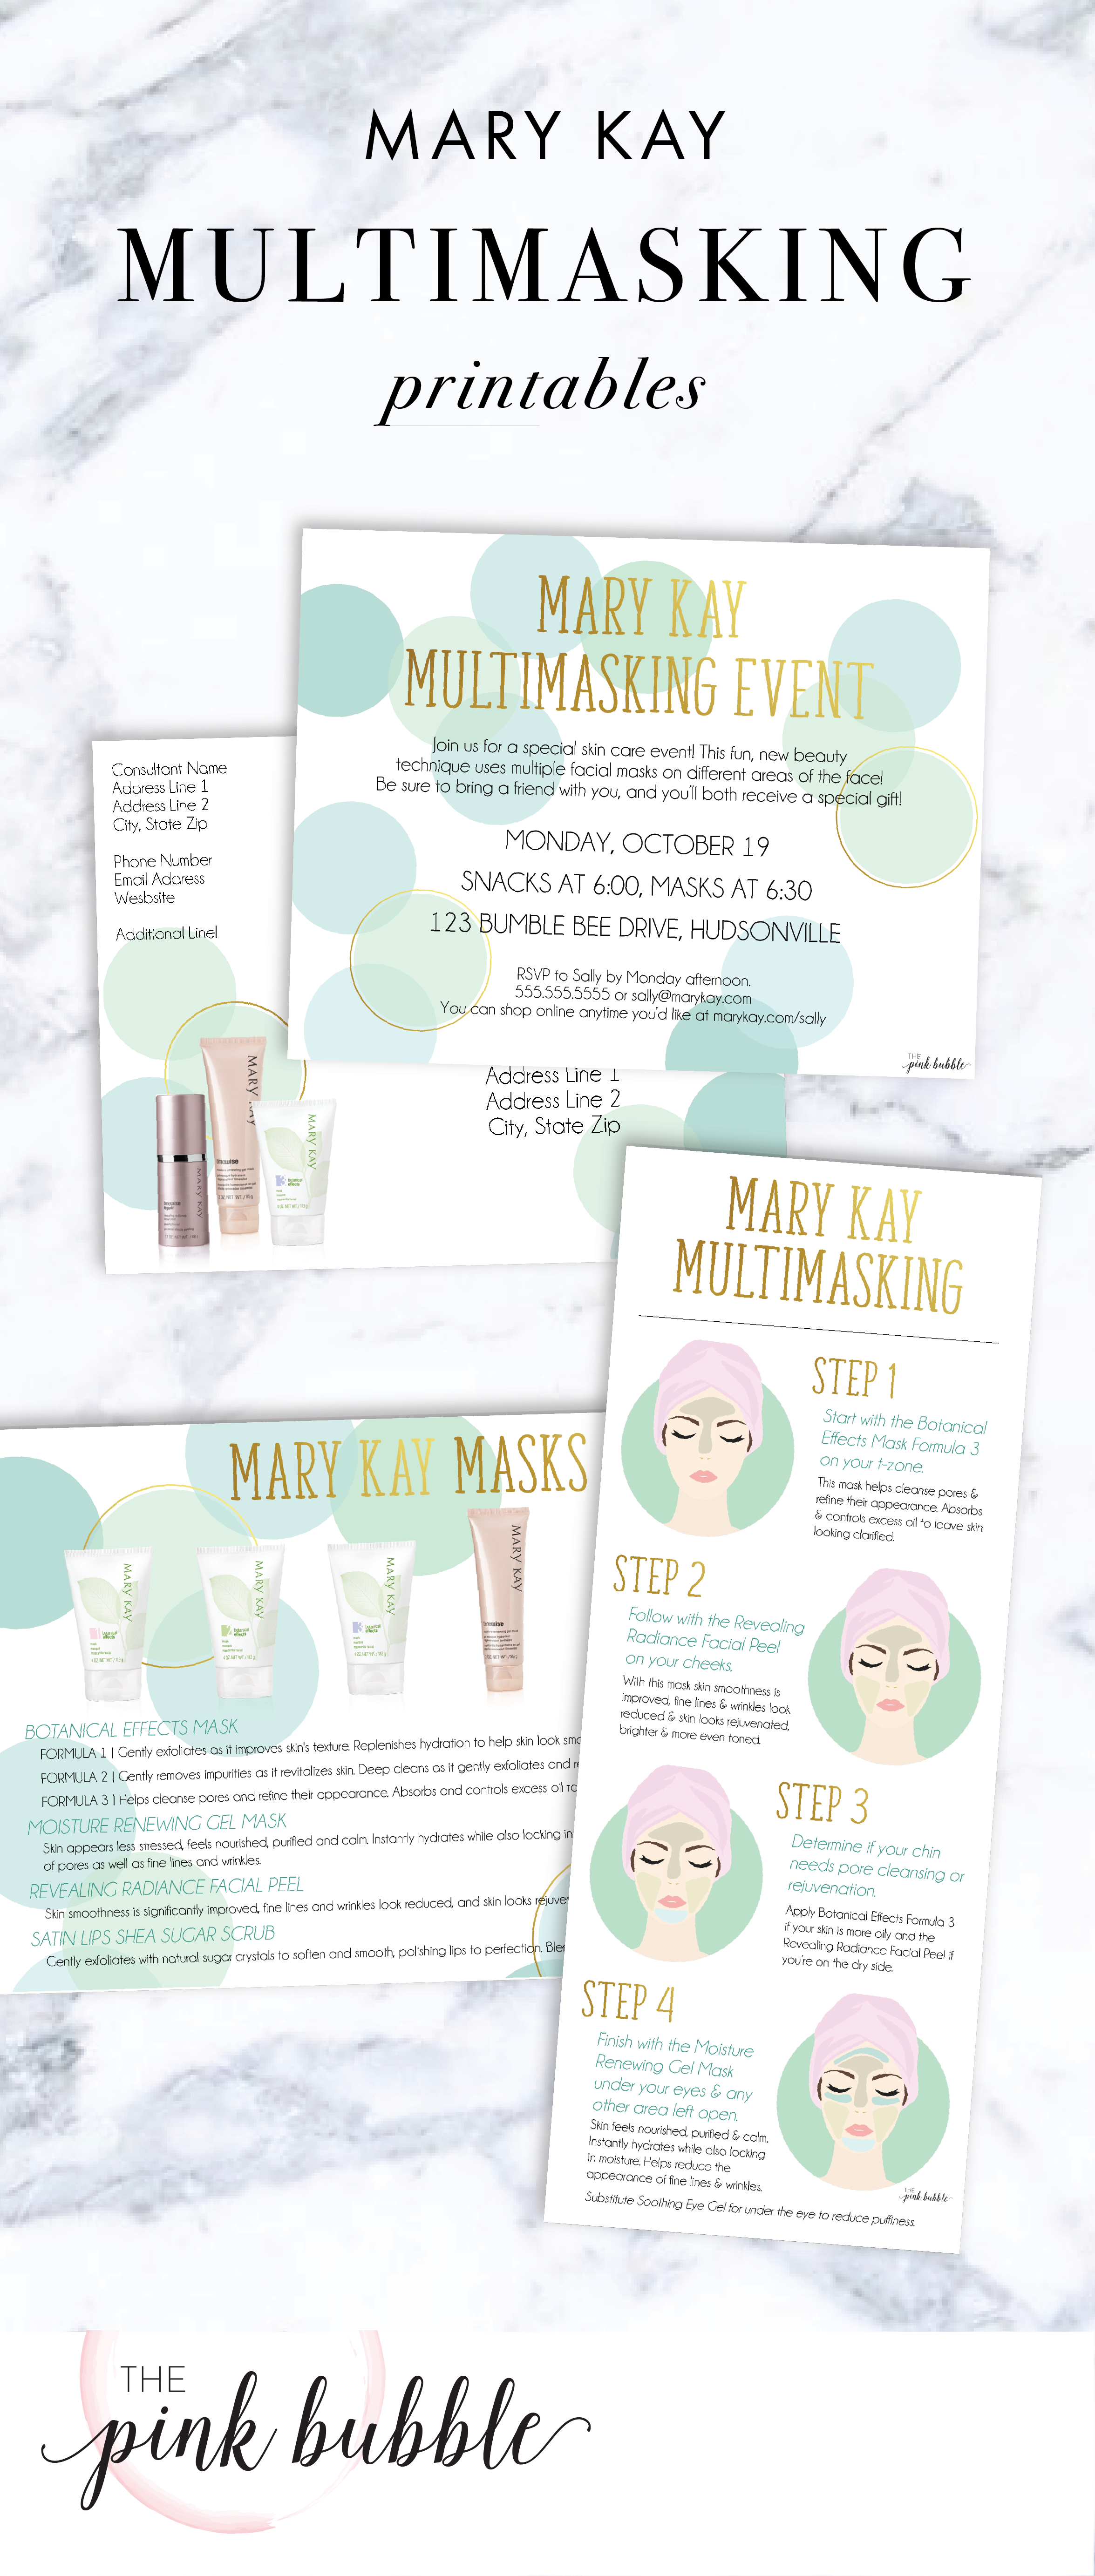 Mary Kay Multimasking Event Printables Find Them Only At